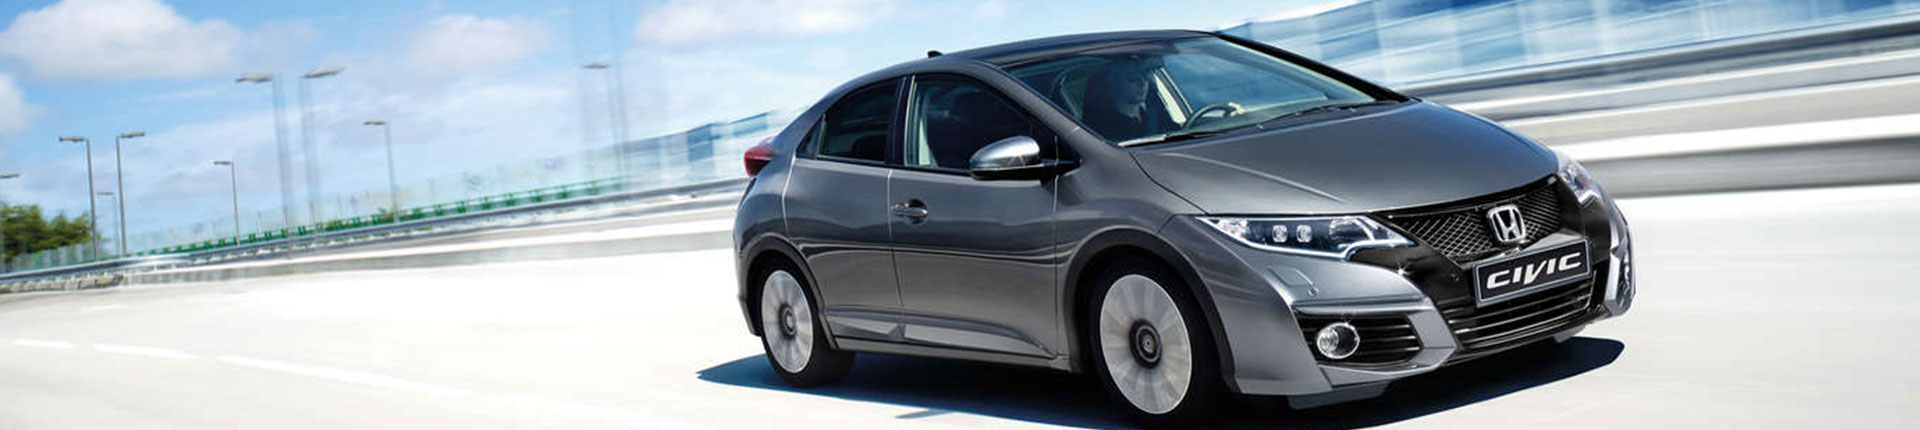 civic-slider2